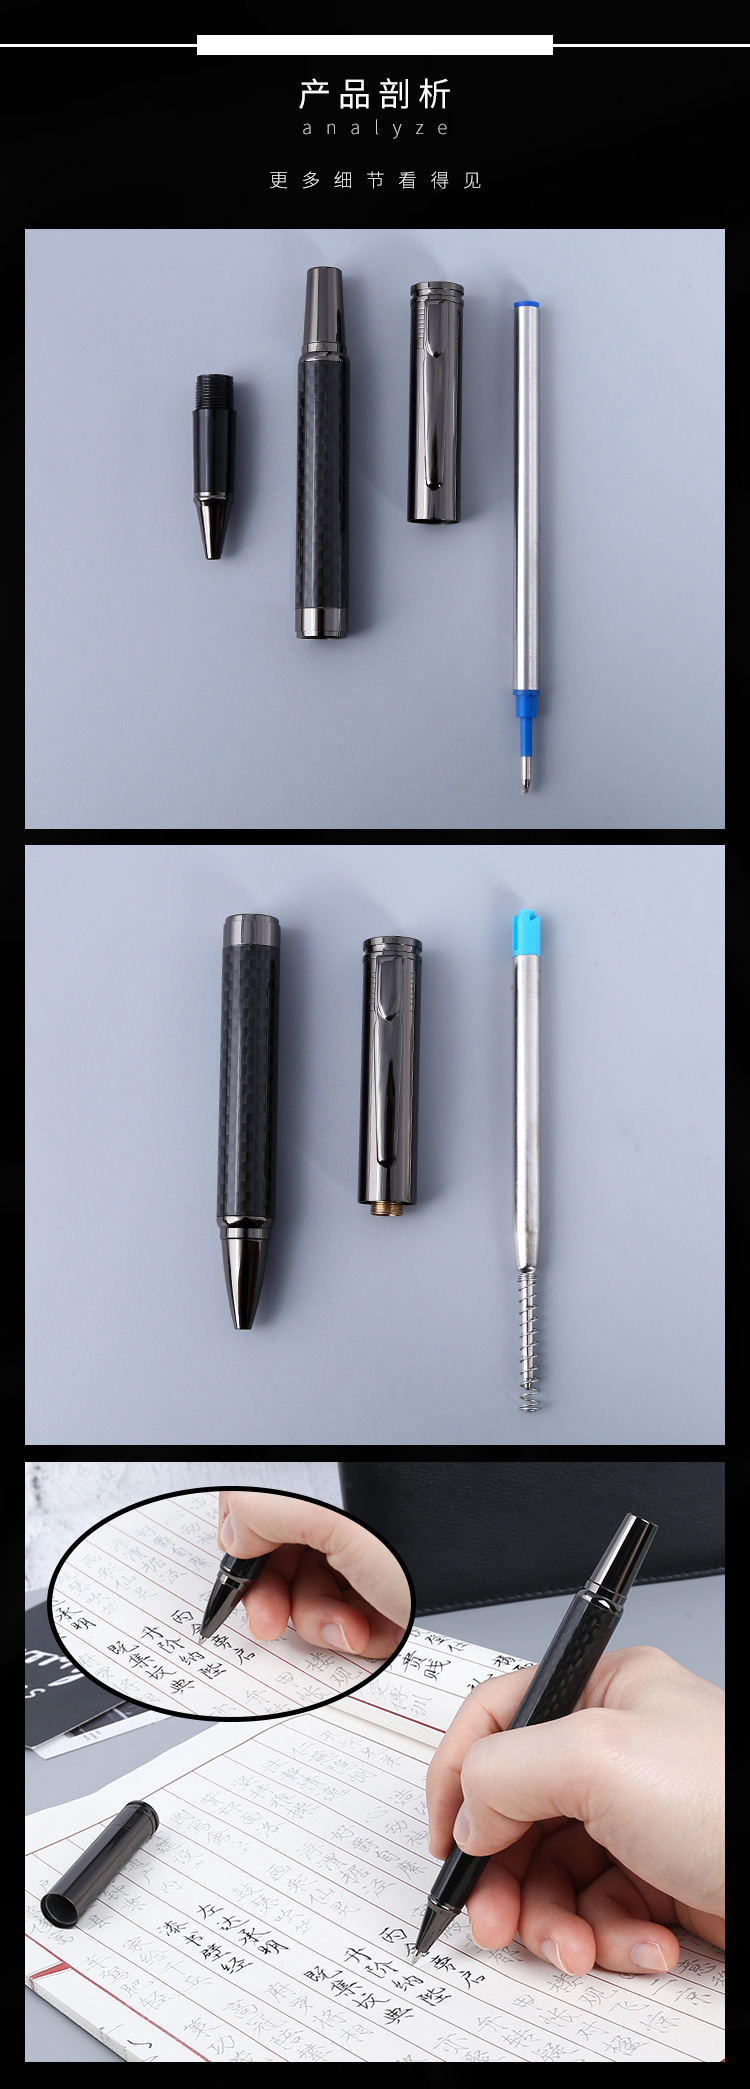 2019 OEM wholesale black metal pen set ball pen promotional carbon fiber metal pen